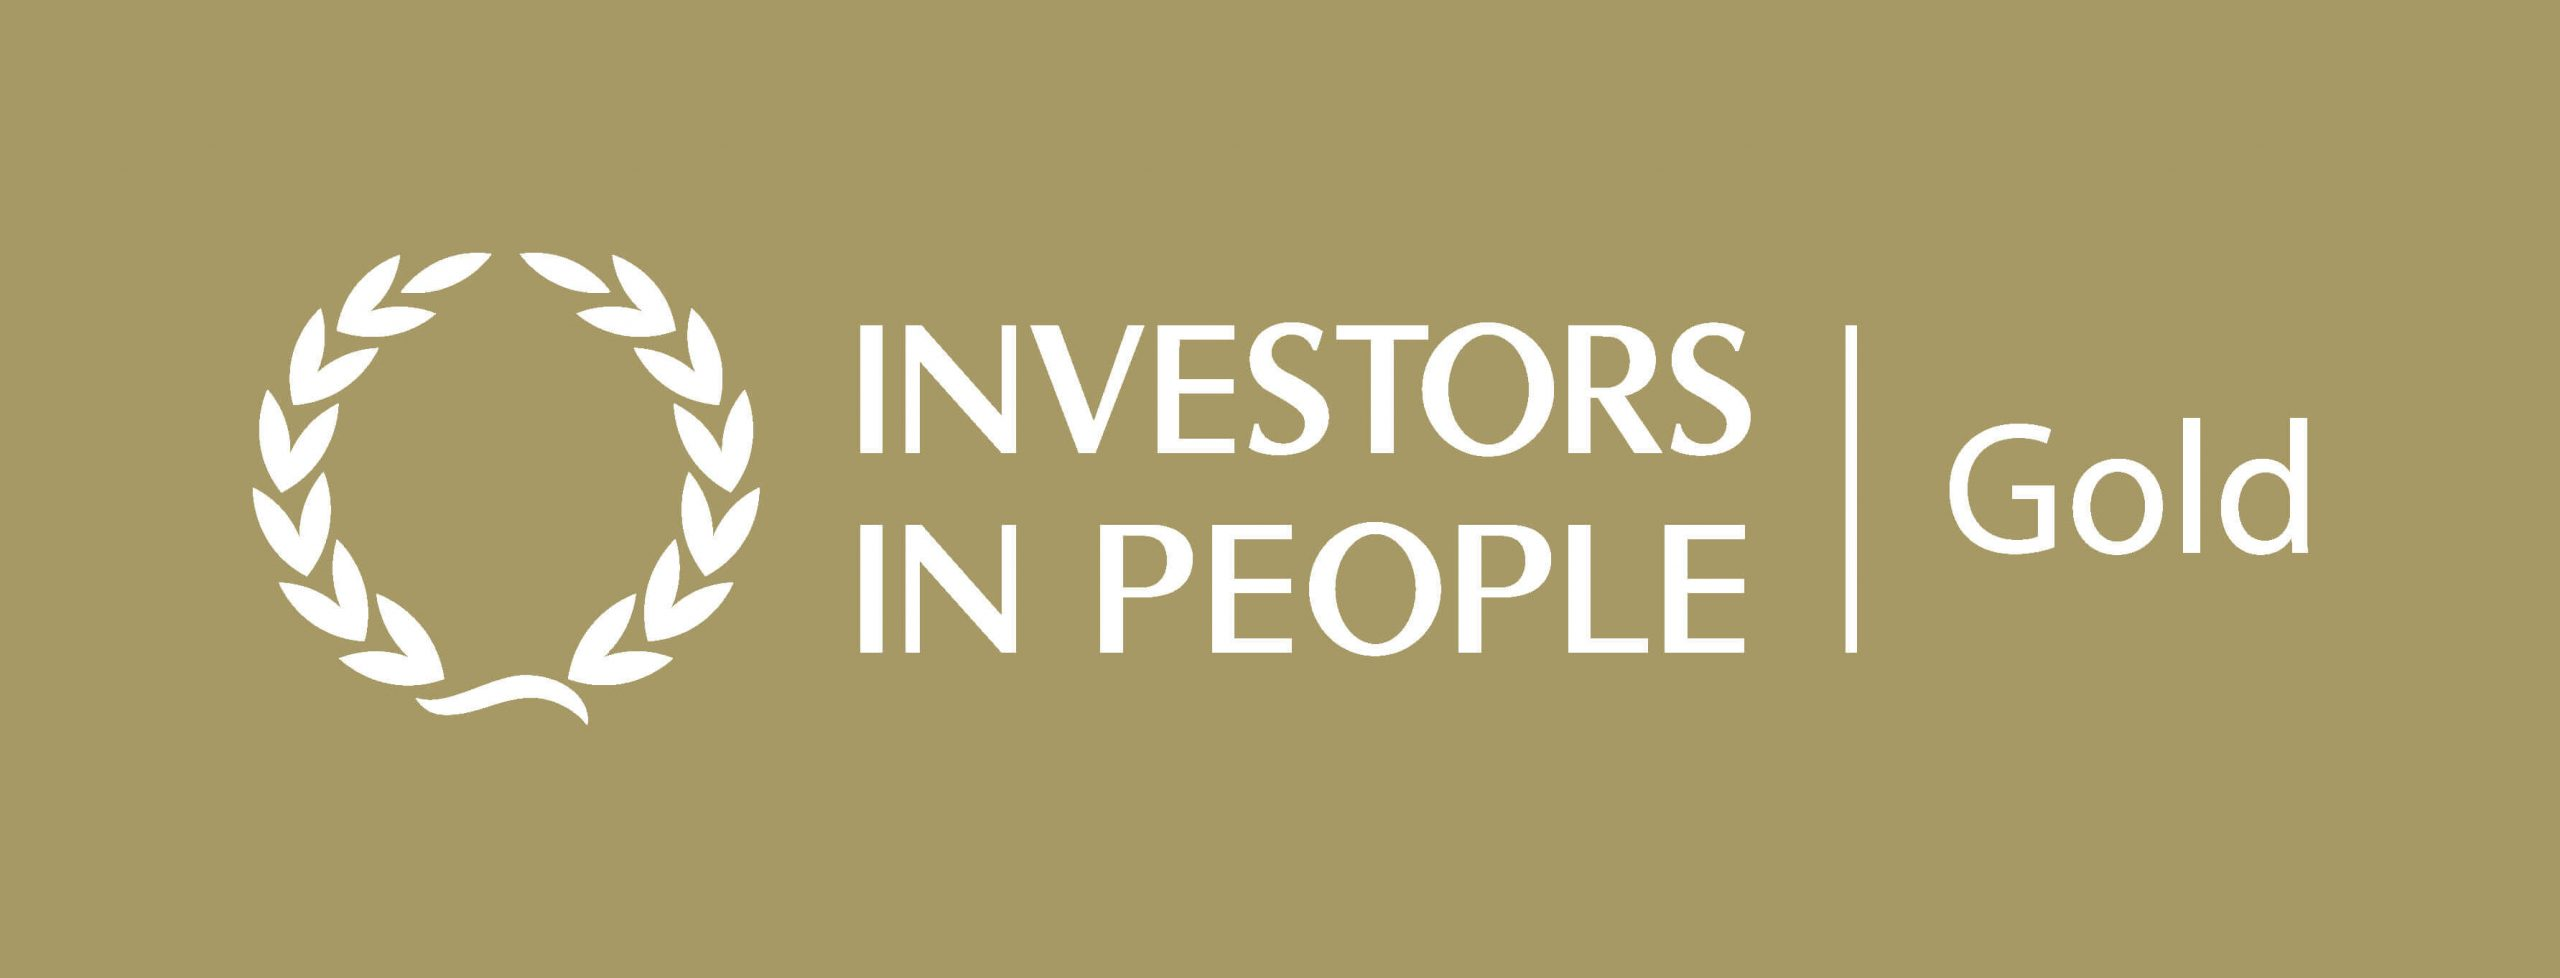 Investors-in-People-Gold logo